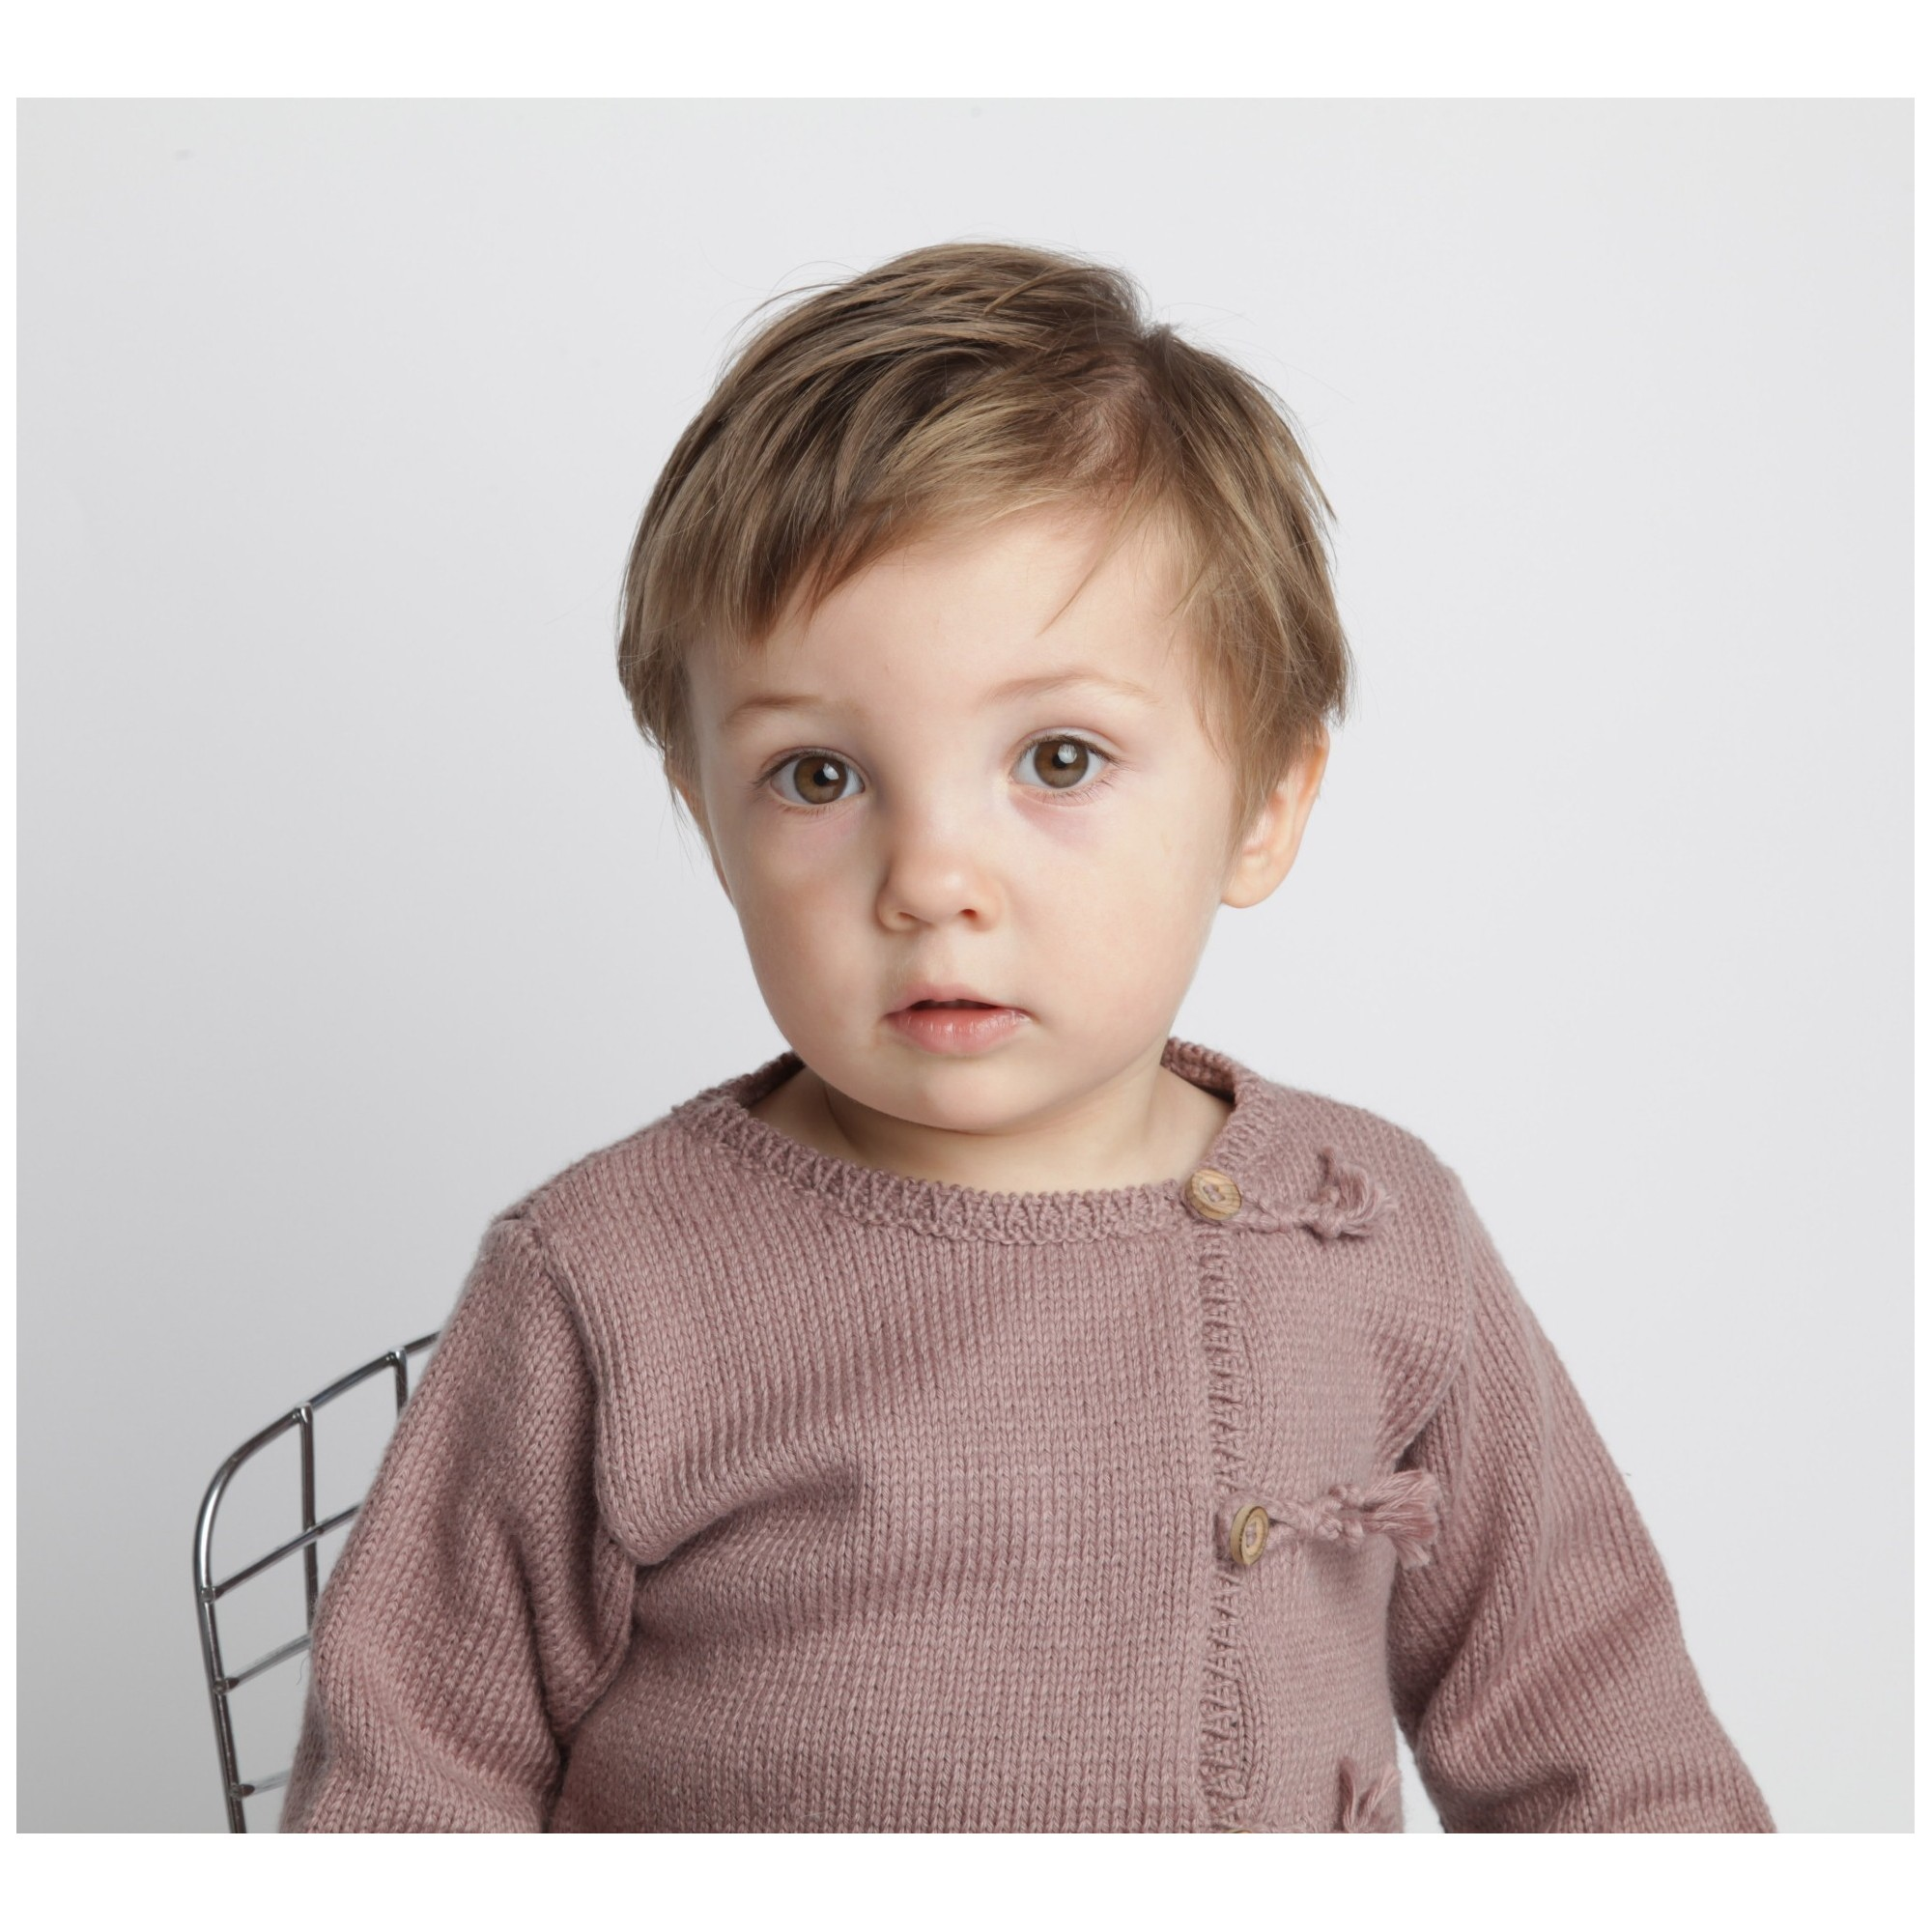 Taupe baby sweater knitted in moss stitches made from cotton and cashmere - 2